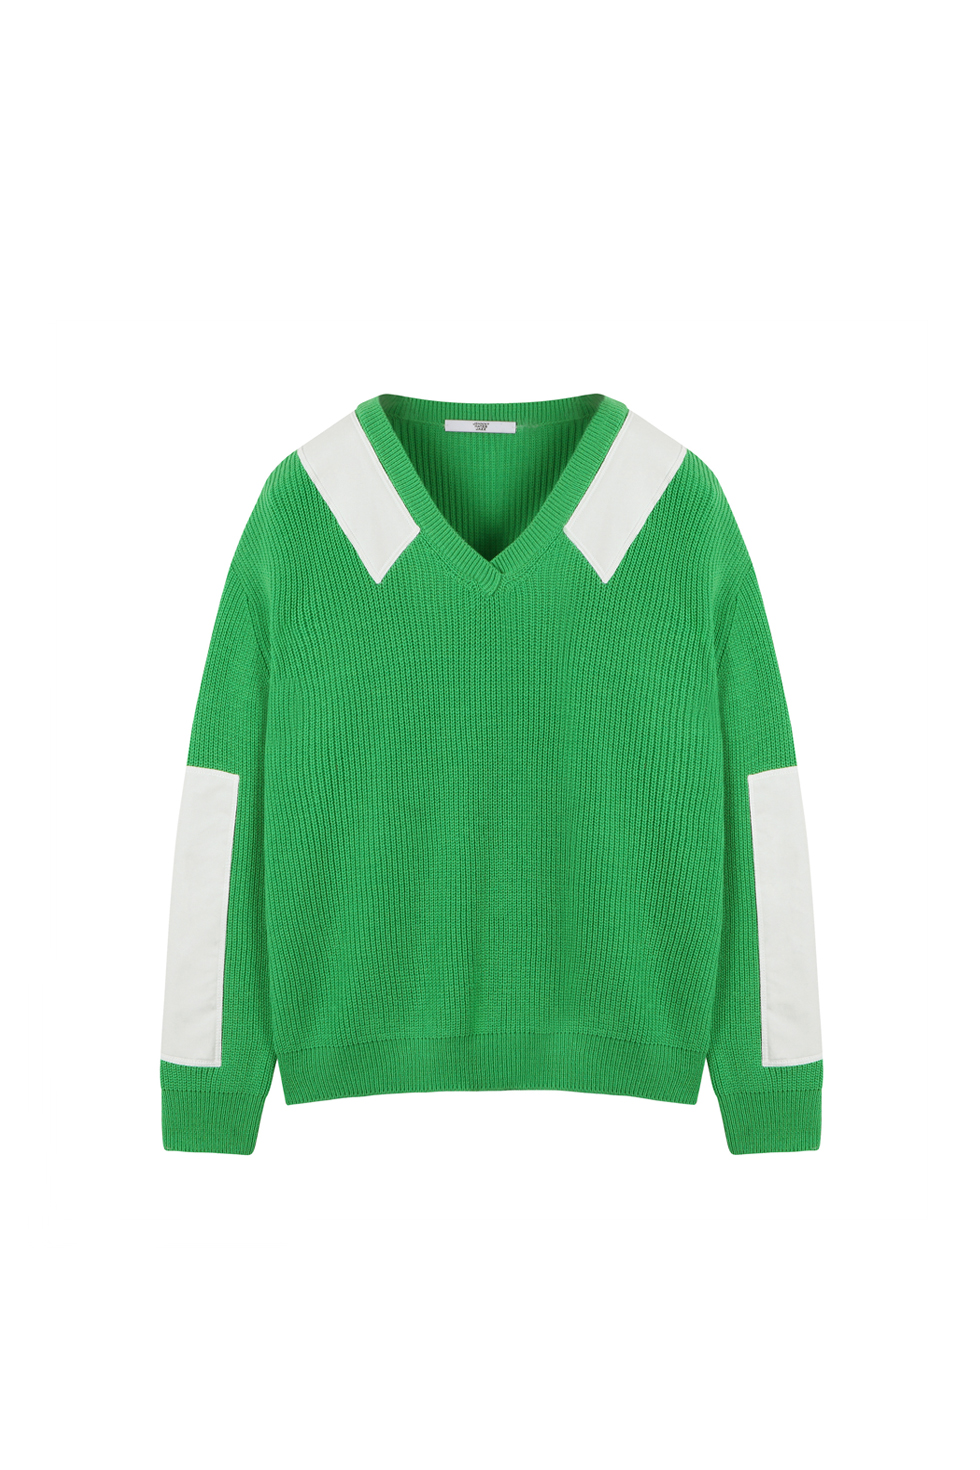 COTTON PATCH PULLOVER KNIT - GREEN